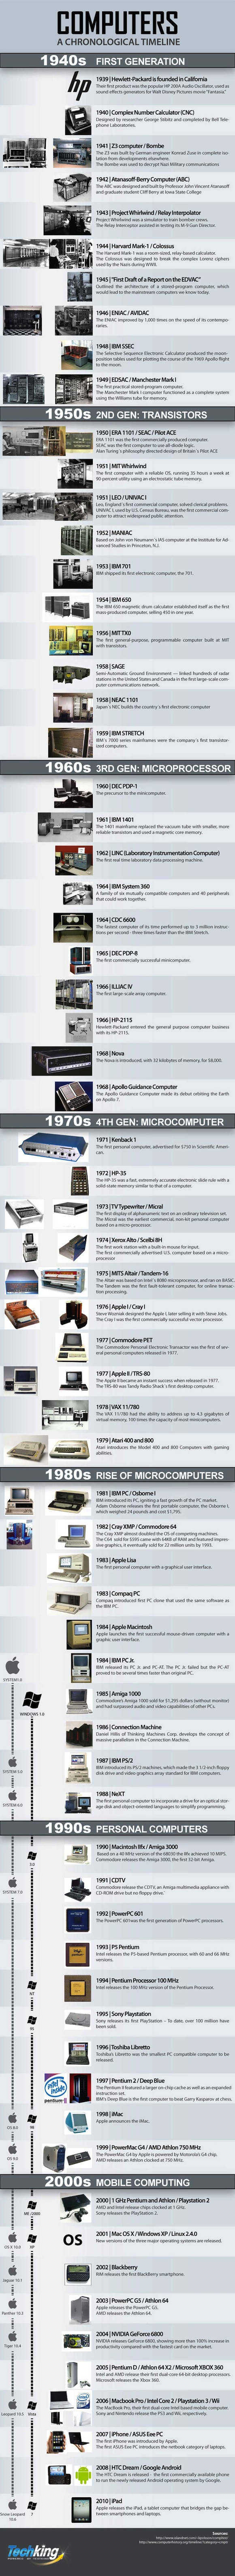 A History Of Computers From 1939 to 2010